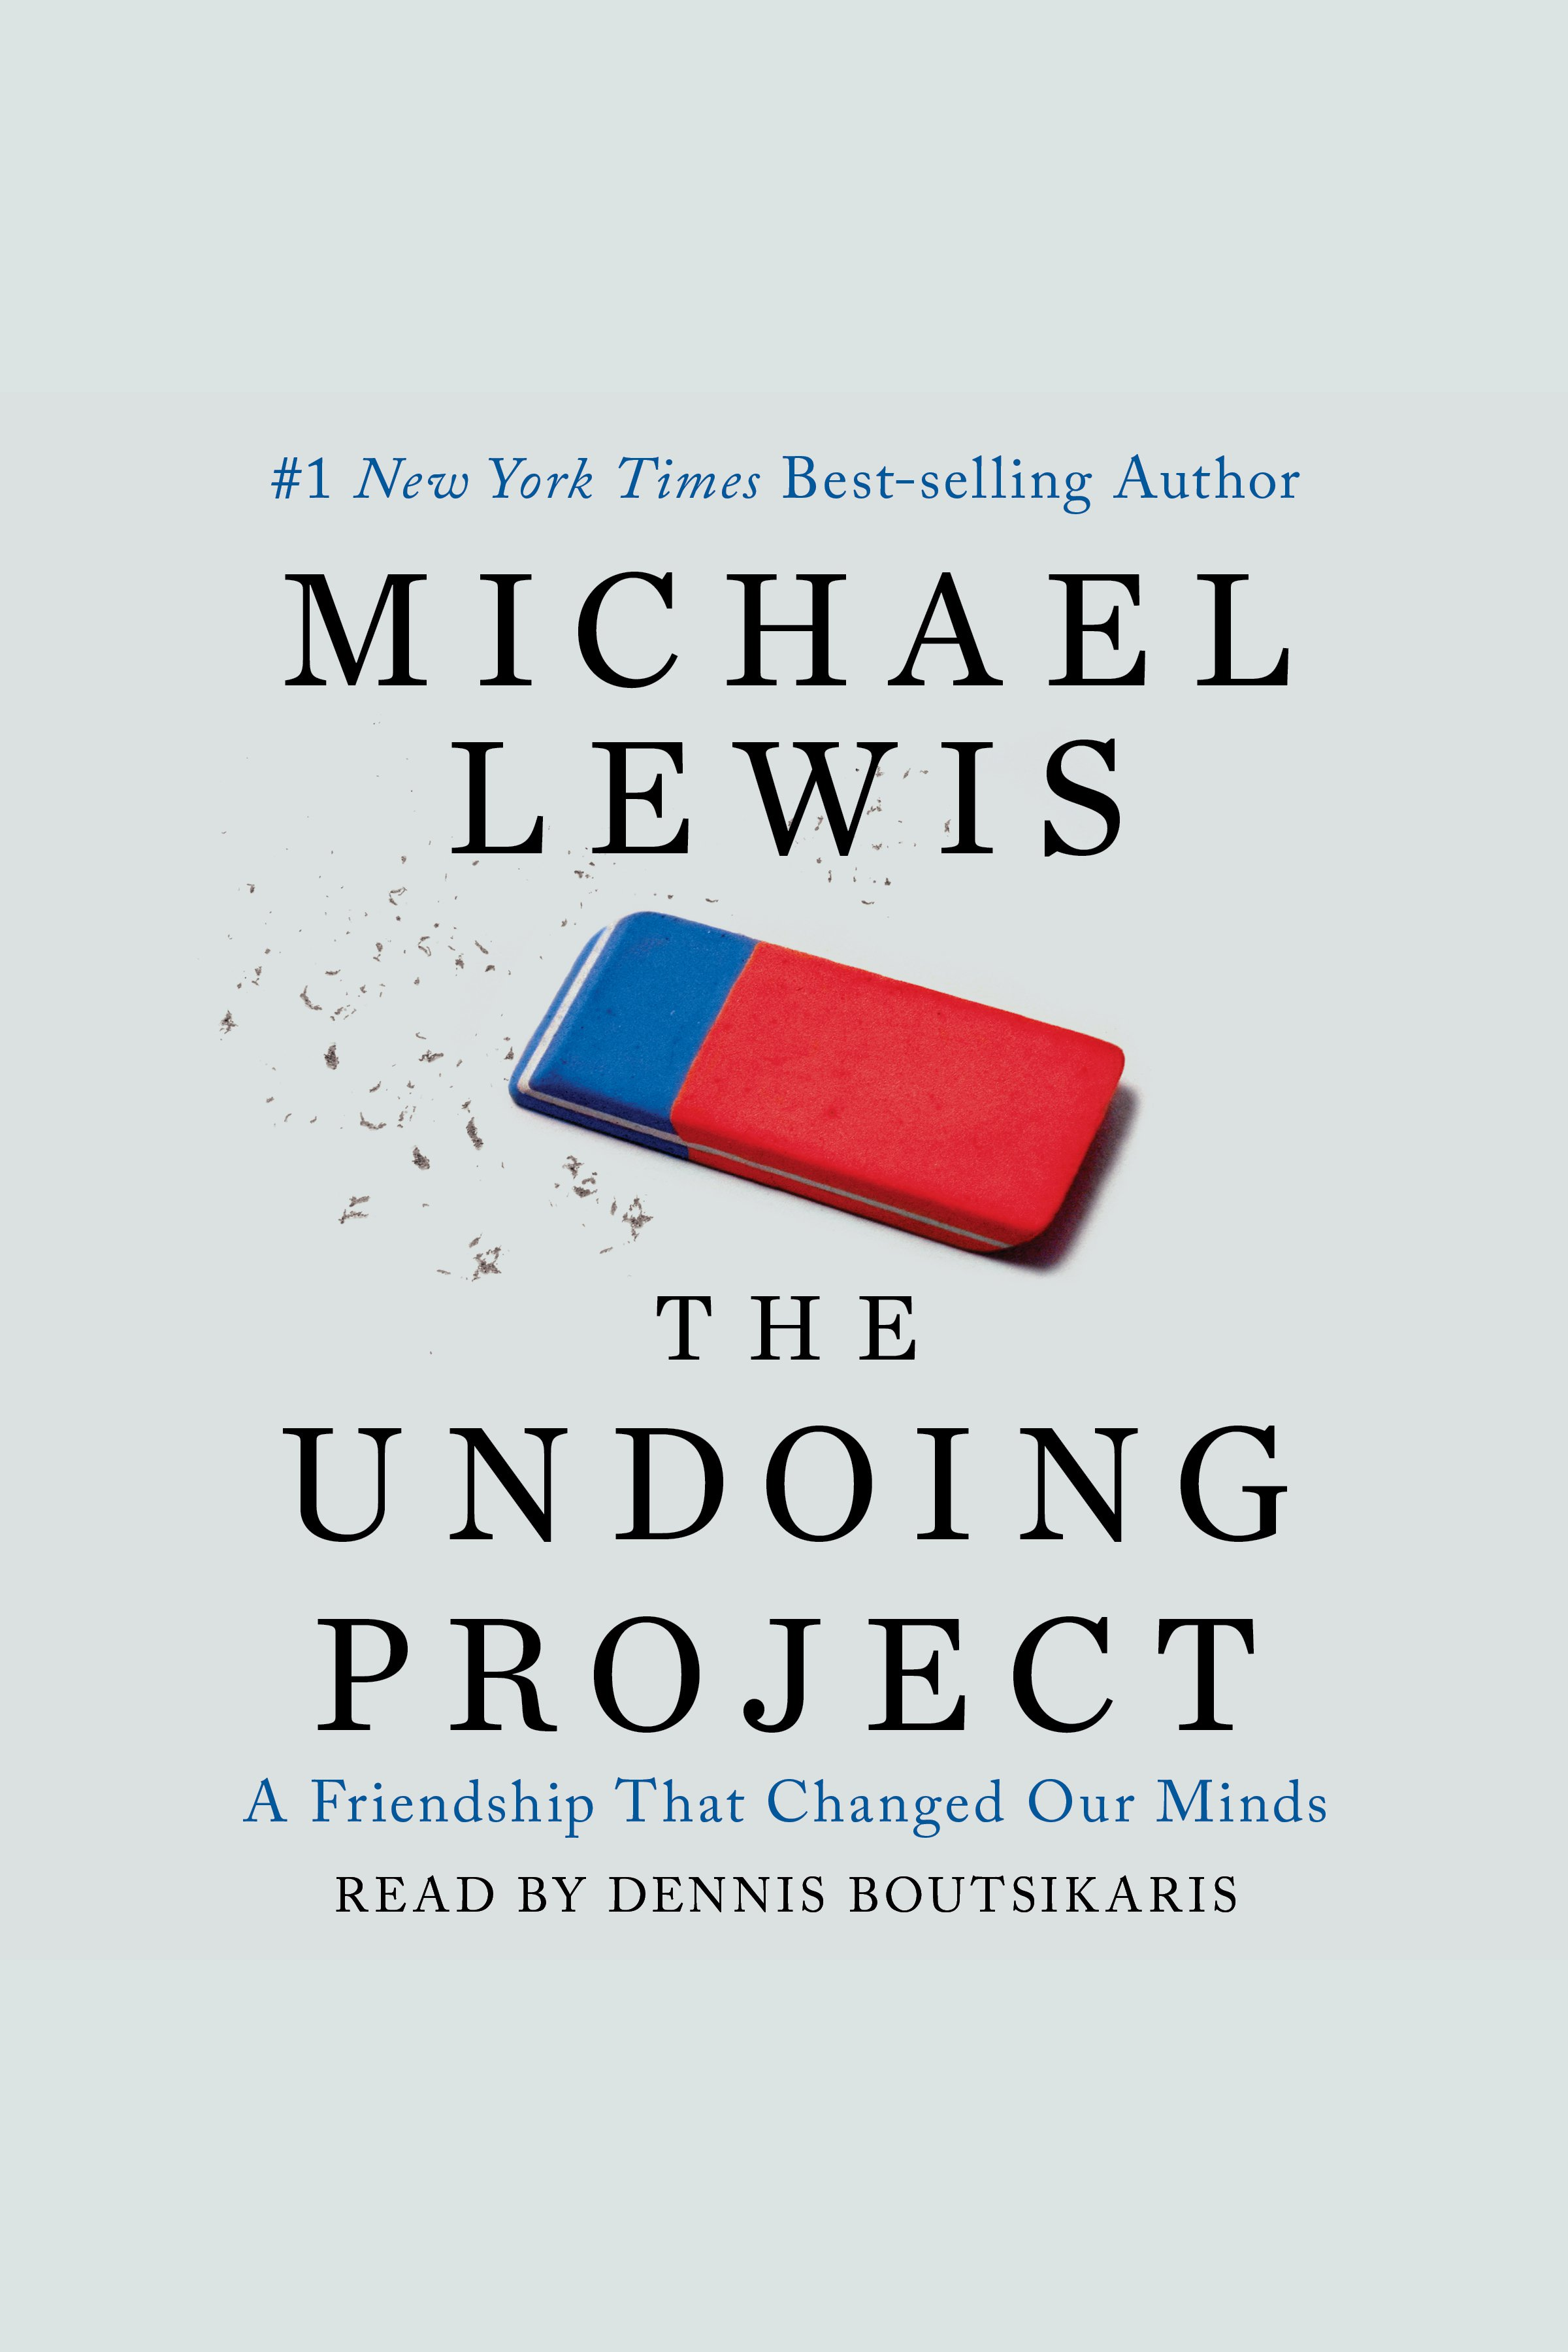 The Undoing Project [AUDIO EBOOK] A Friendship that Changed Our Minds